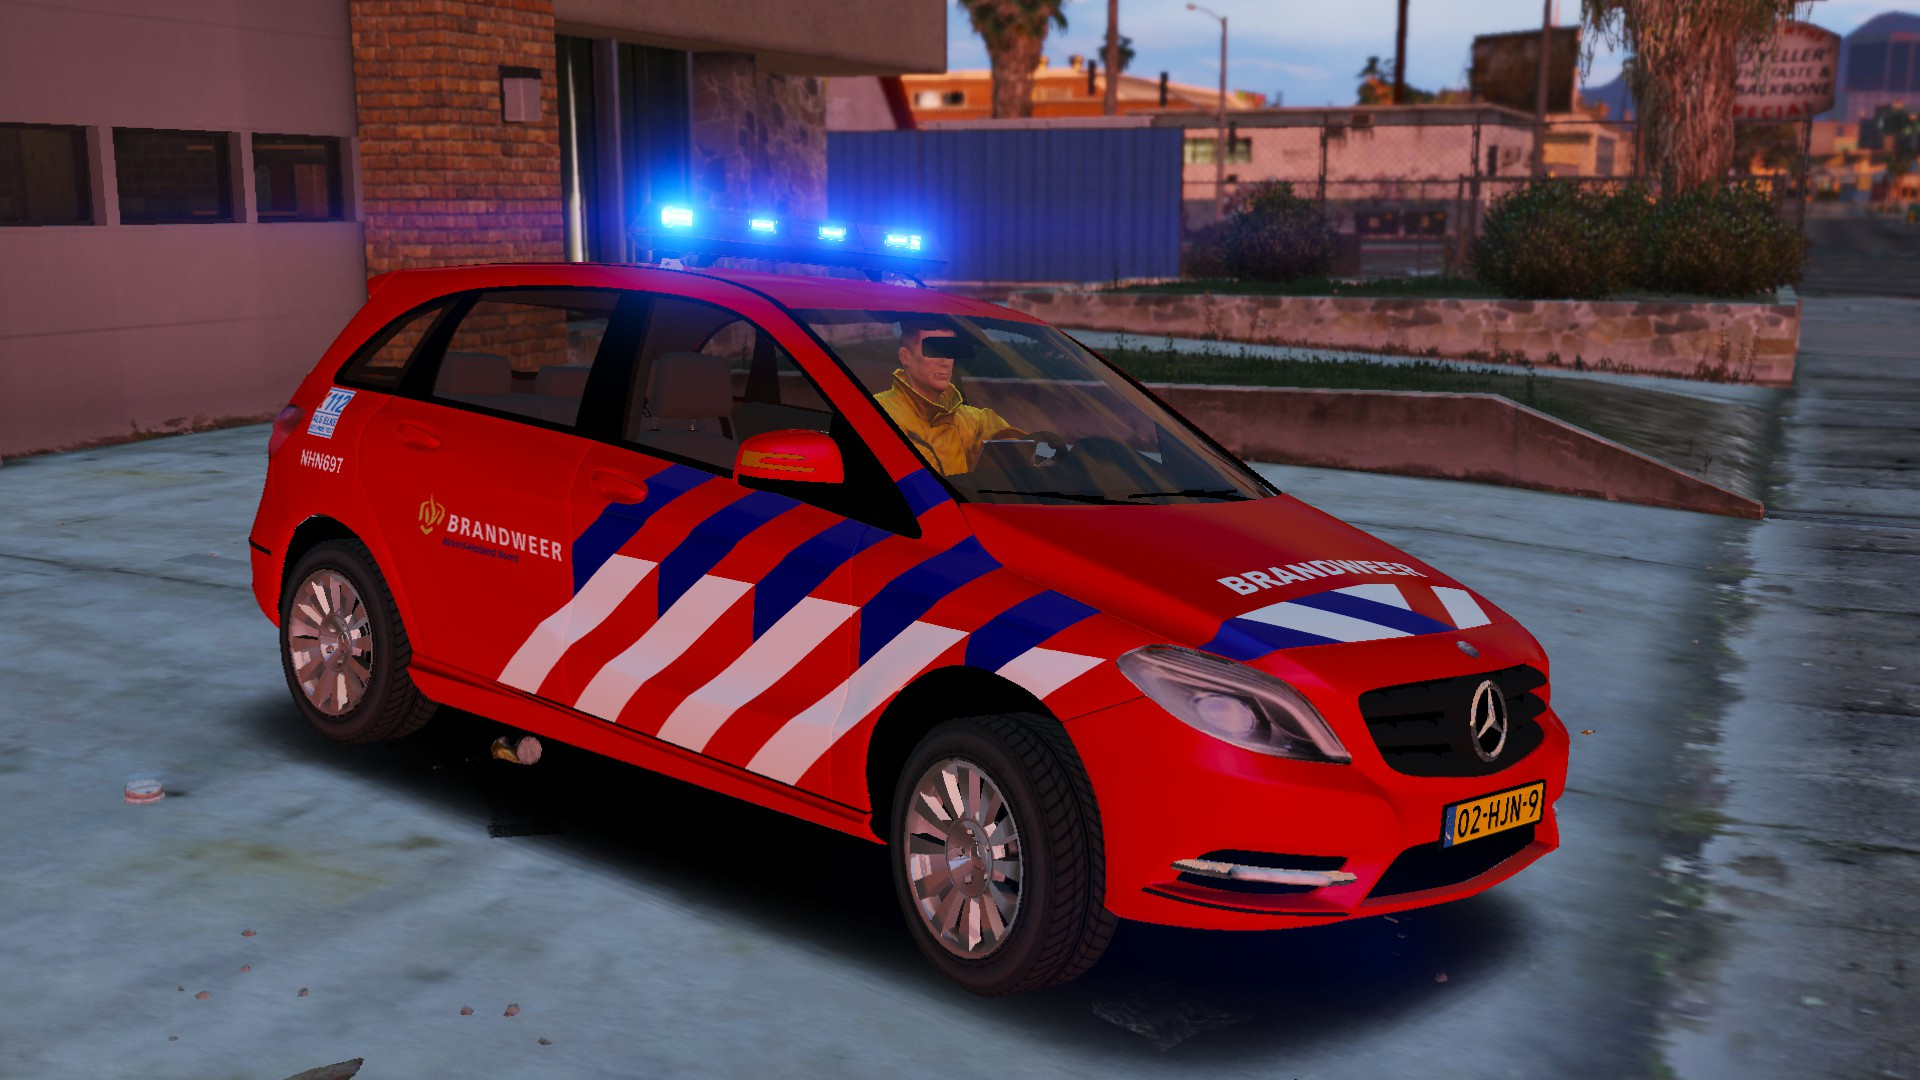 mercedes benz b klasse dienstauto brandweer nhn gta5. Black Bedroom Furniture Sets. Home Design Ideas